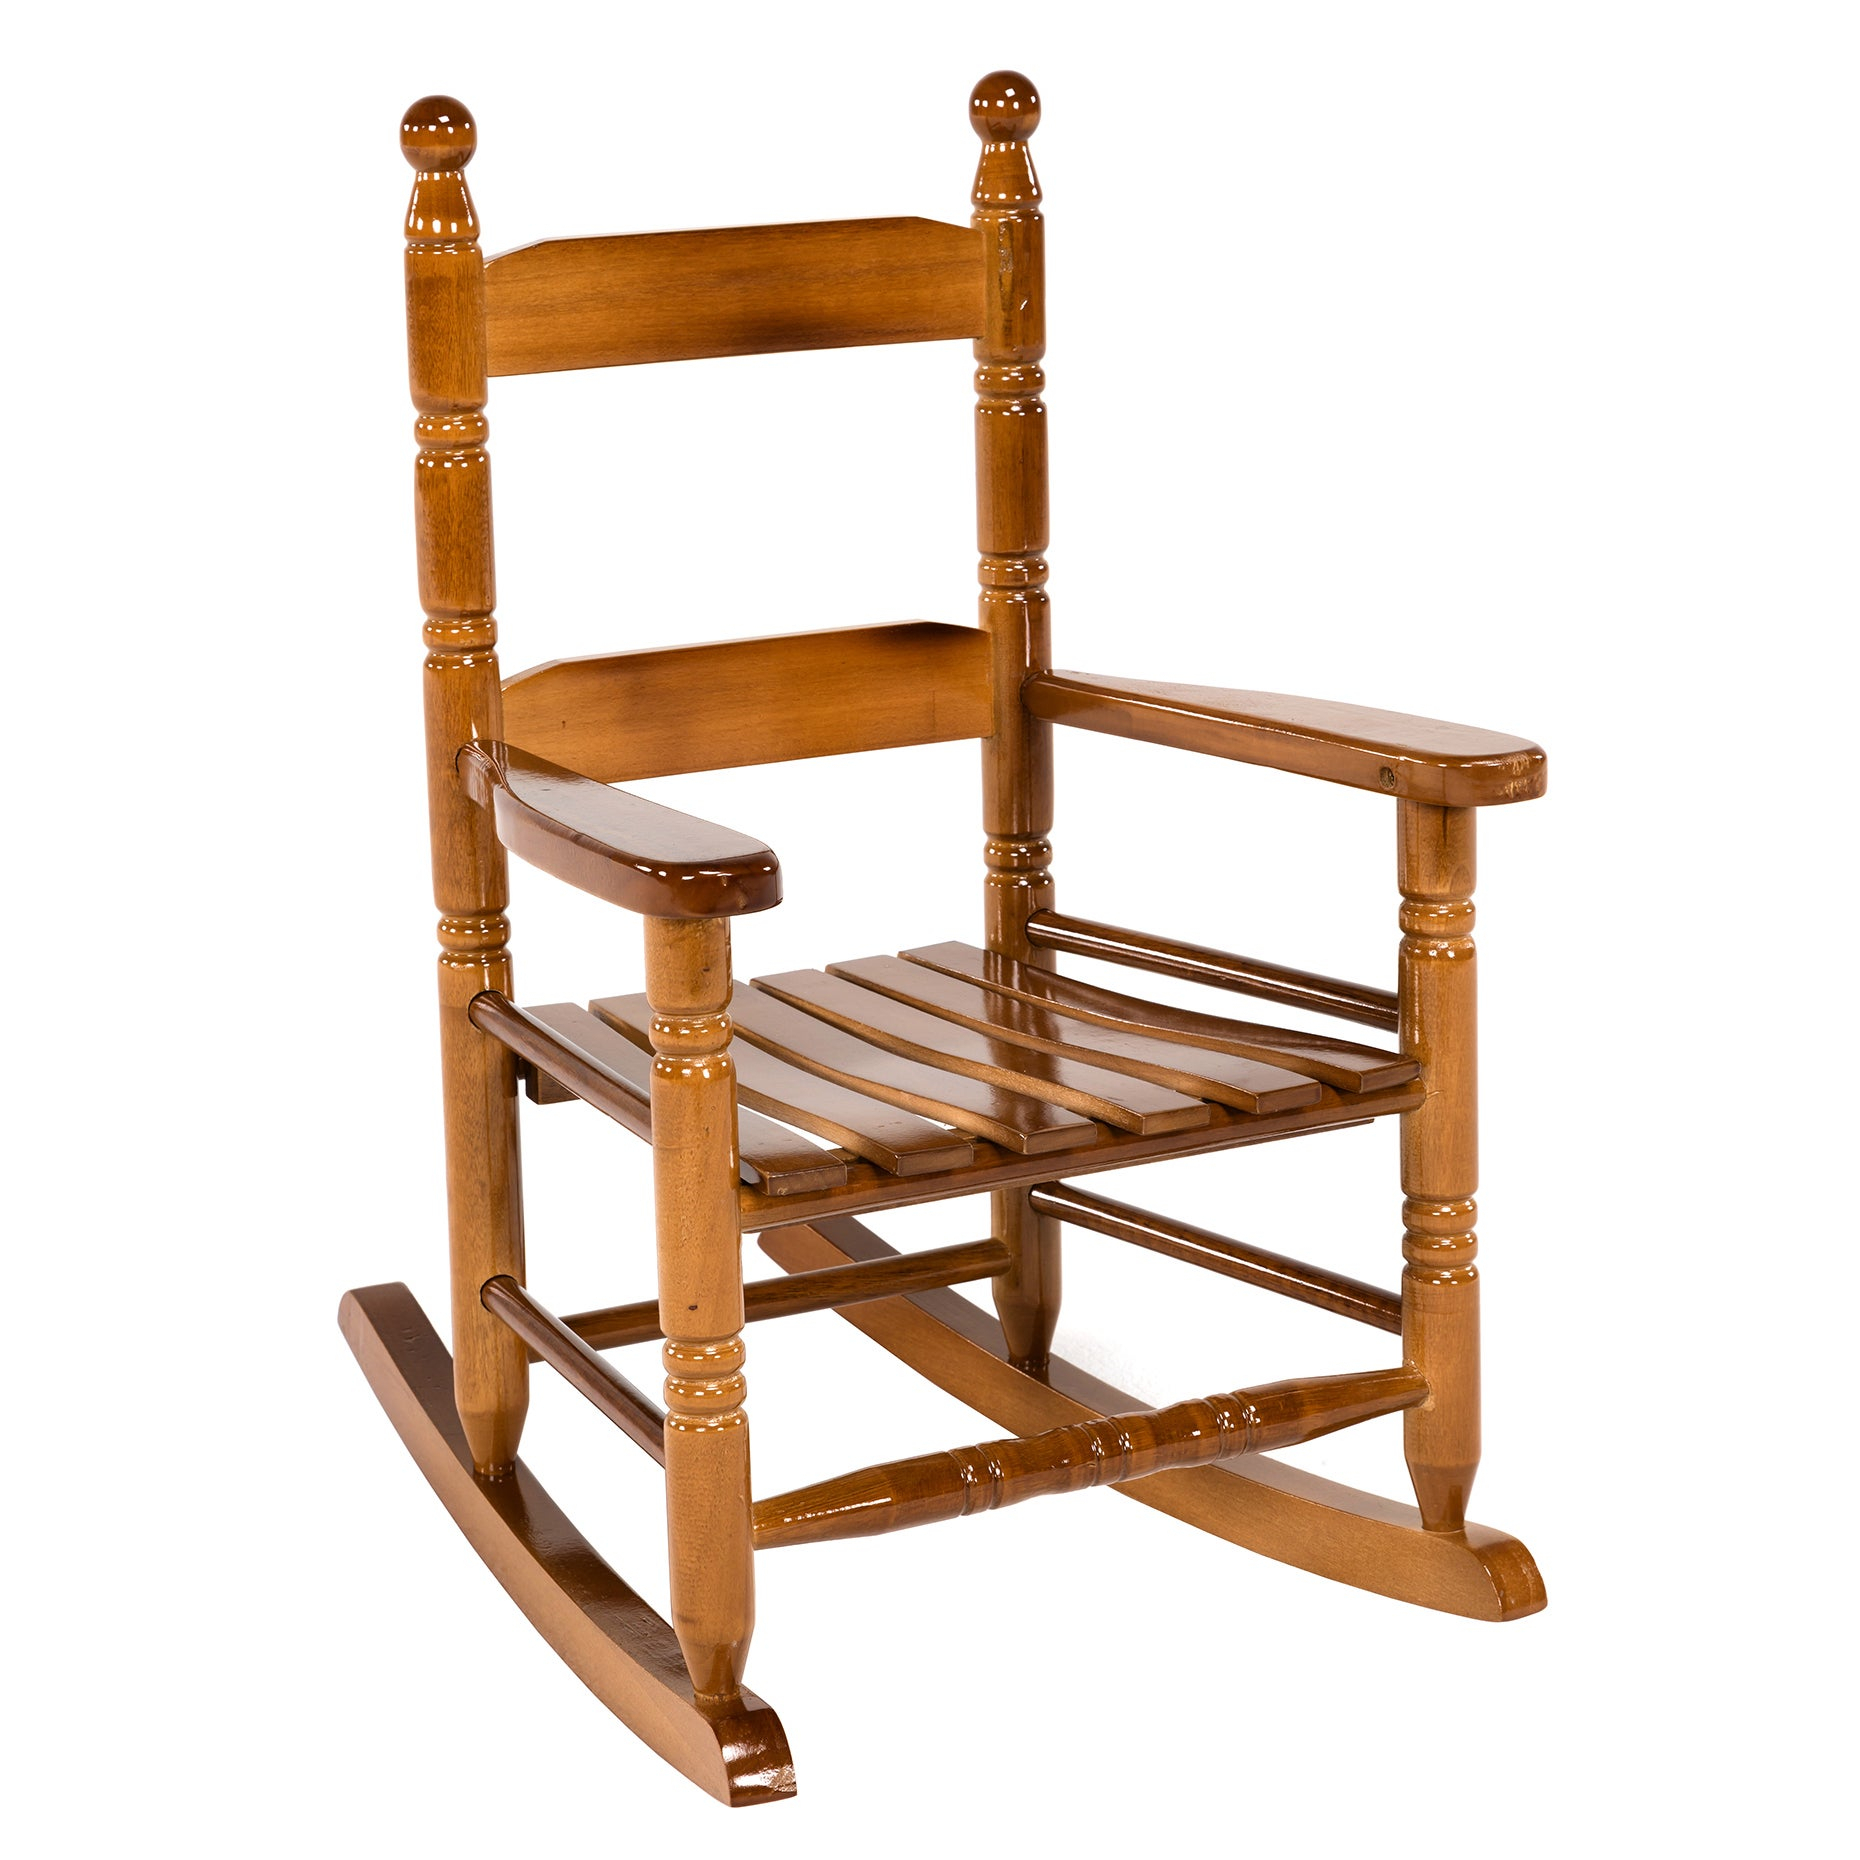 Jack Post Red Wood Knollwood Kid's Rocking Chair Regarding Tobacco Brown Kids Rocking Chairs (View 3 of 20)